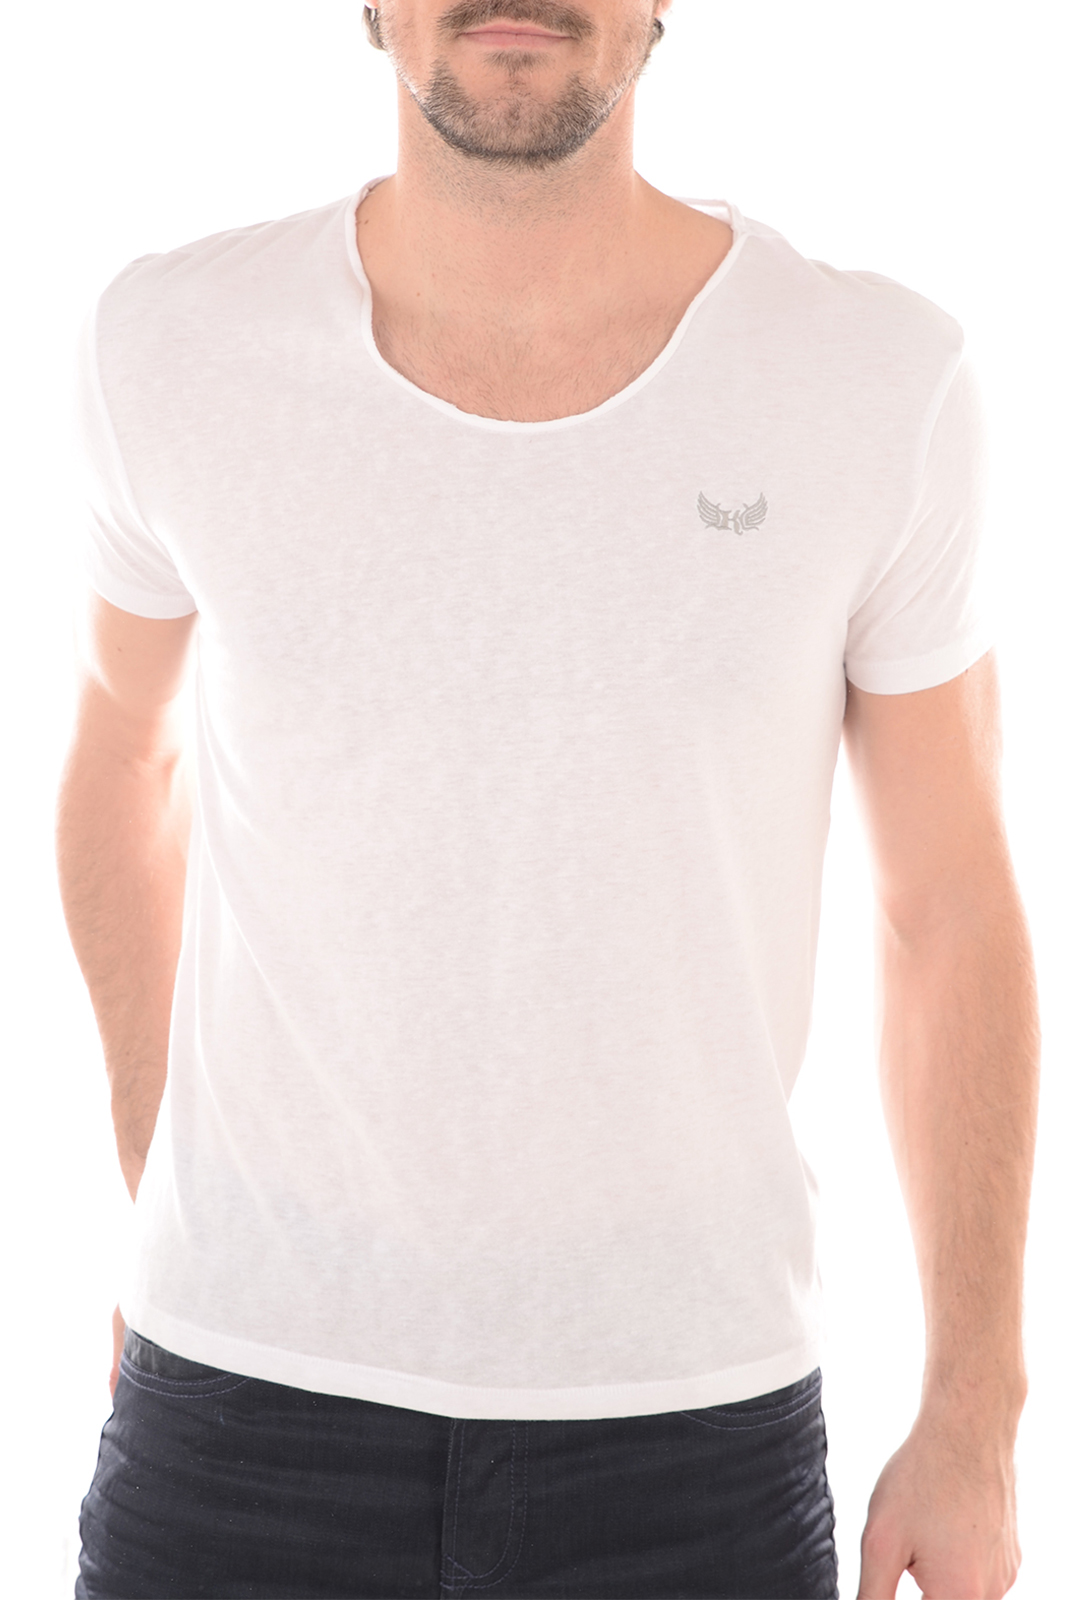 Tee-shirts  Kaporal SALVA WHITE